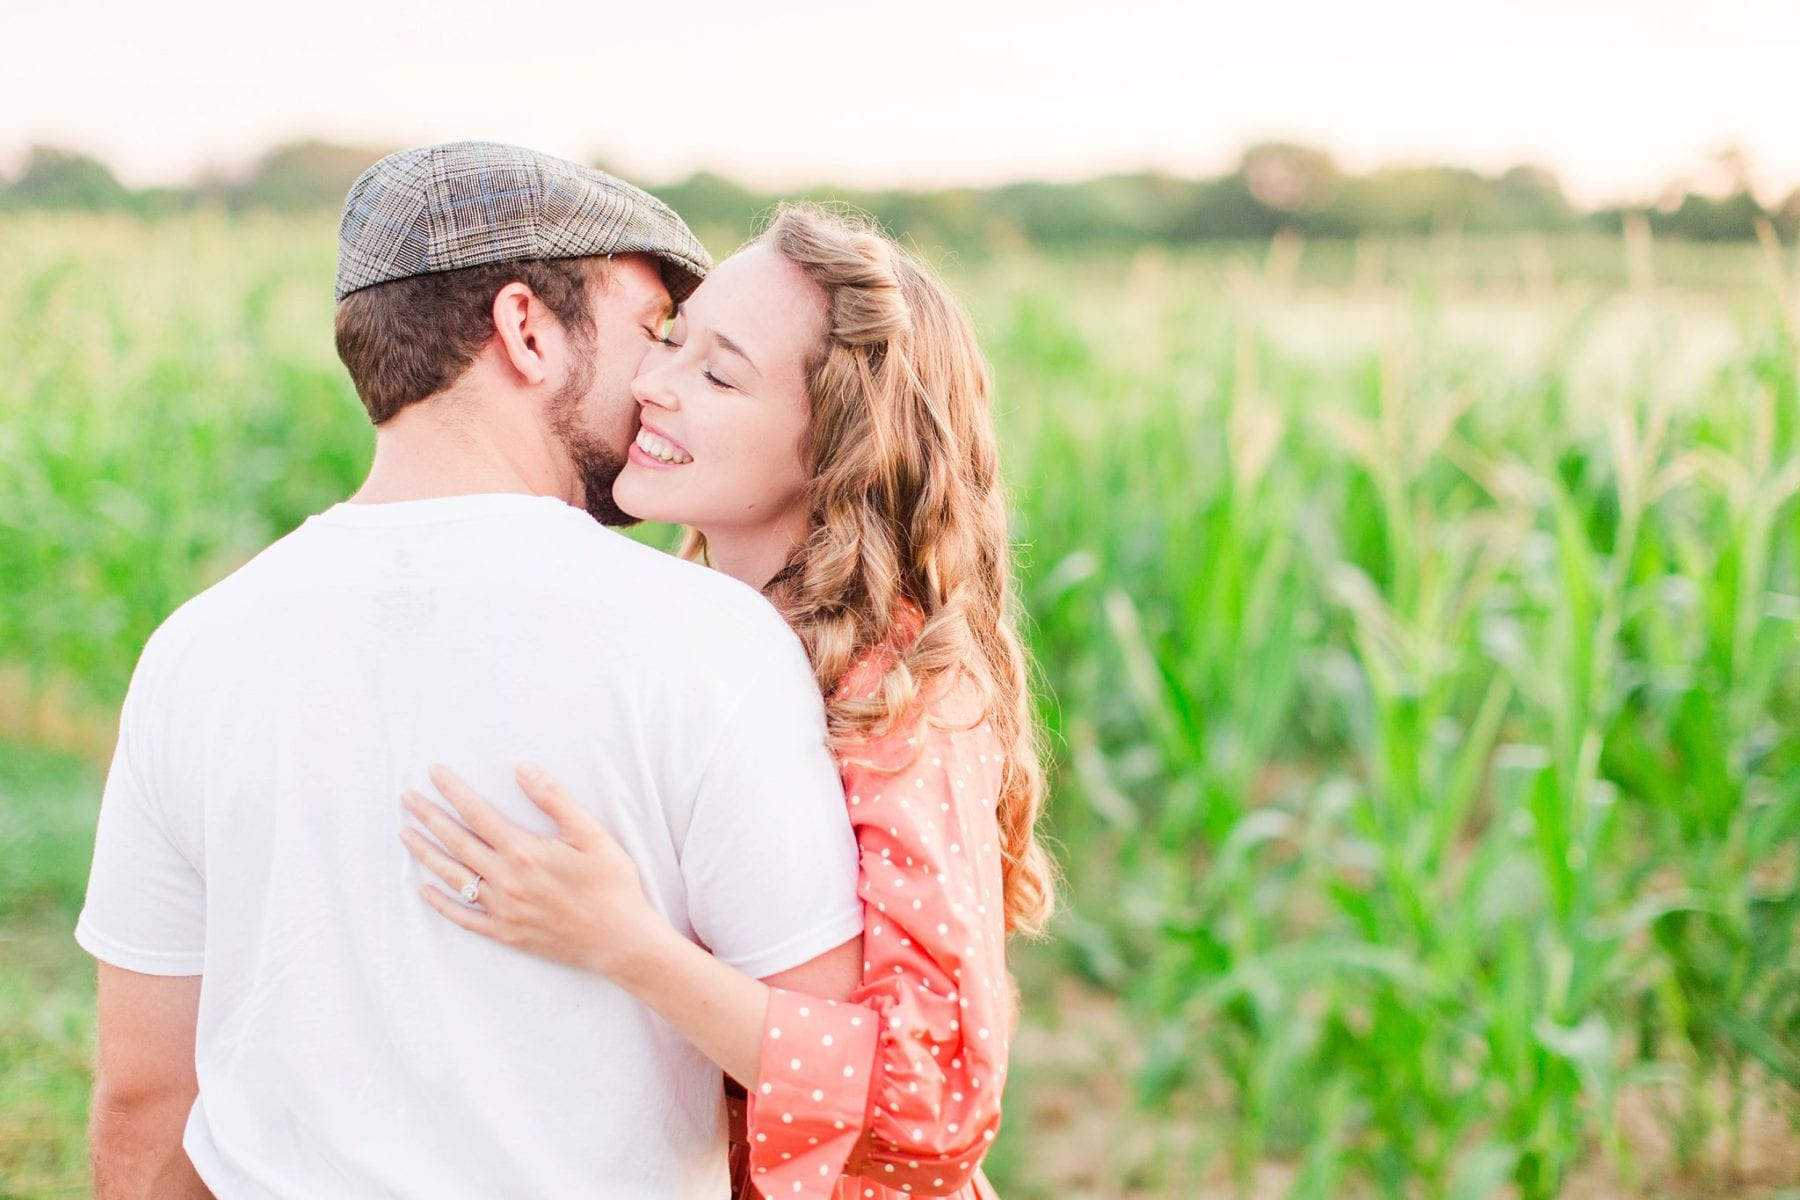 County Fair Engagement Photos Virginia Wedding Photographer Megan Kelsey Photography Samantha & Charles-13.JPG